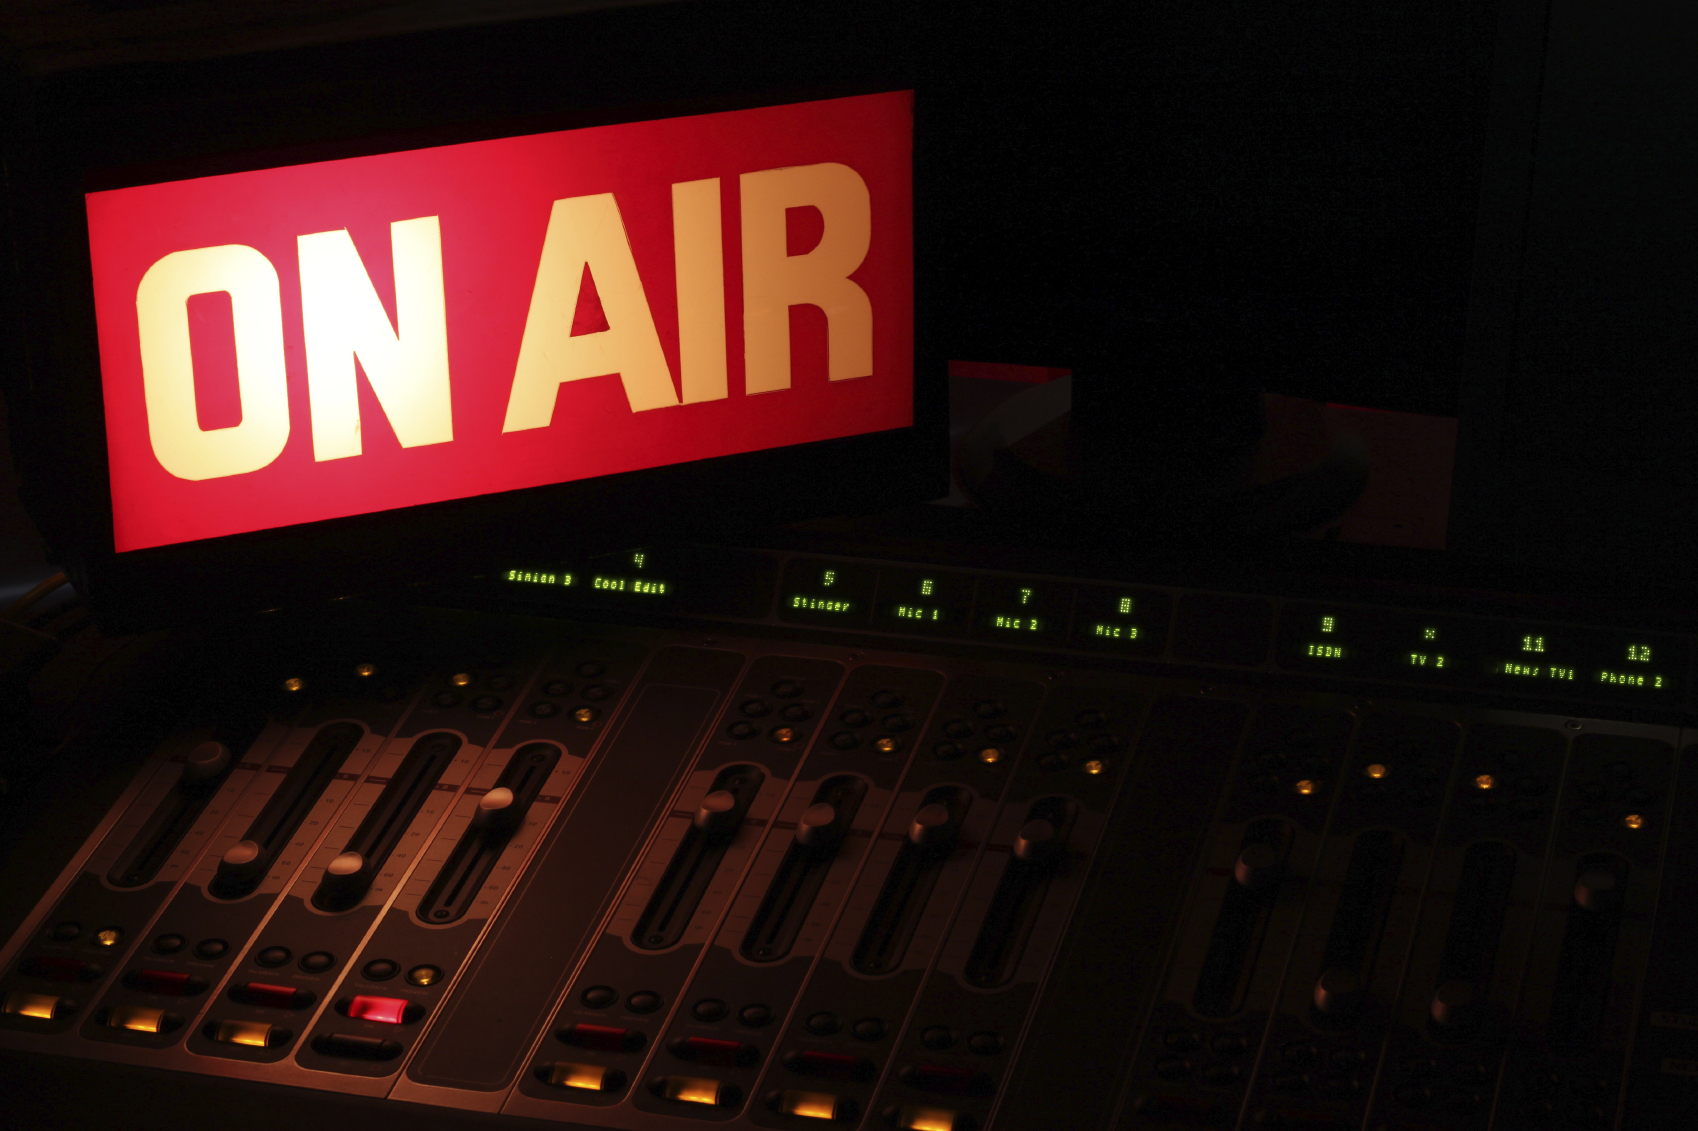 On Air sign in a studio broadcasting via radio, podcast or wireless transmission.